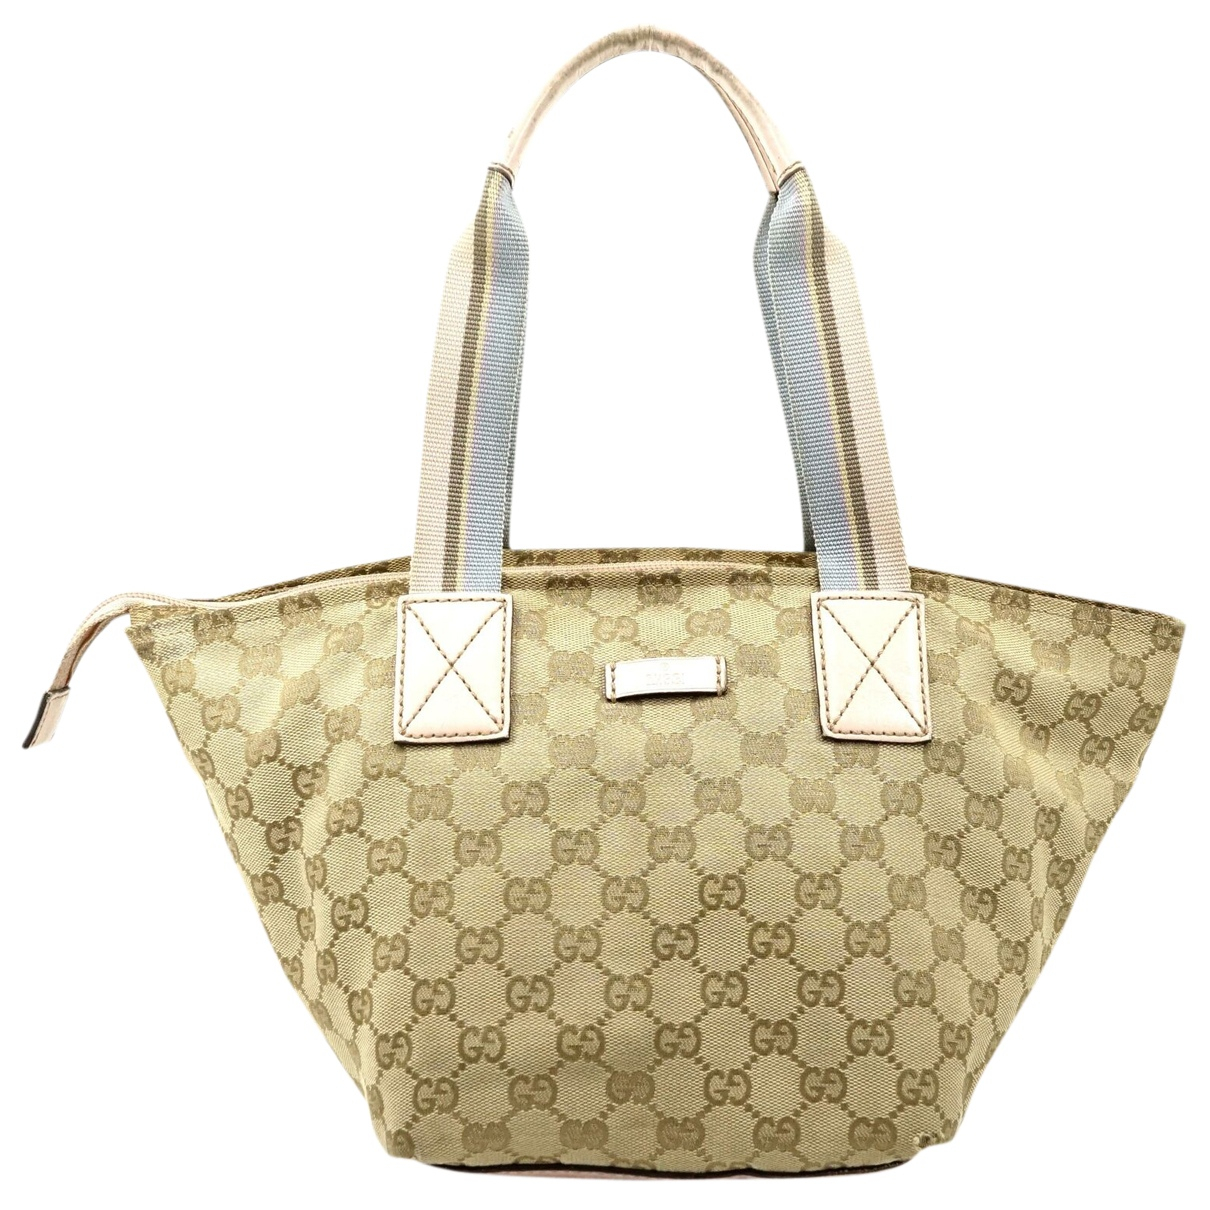 Gucci N Leather handbag for Women N